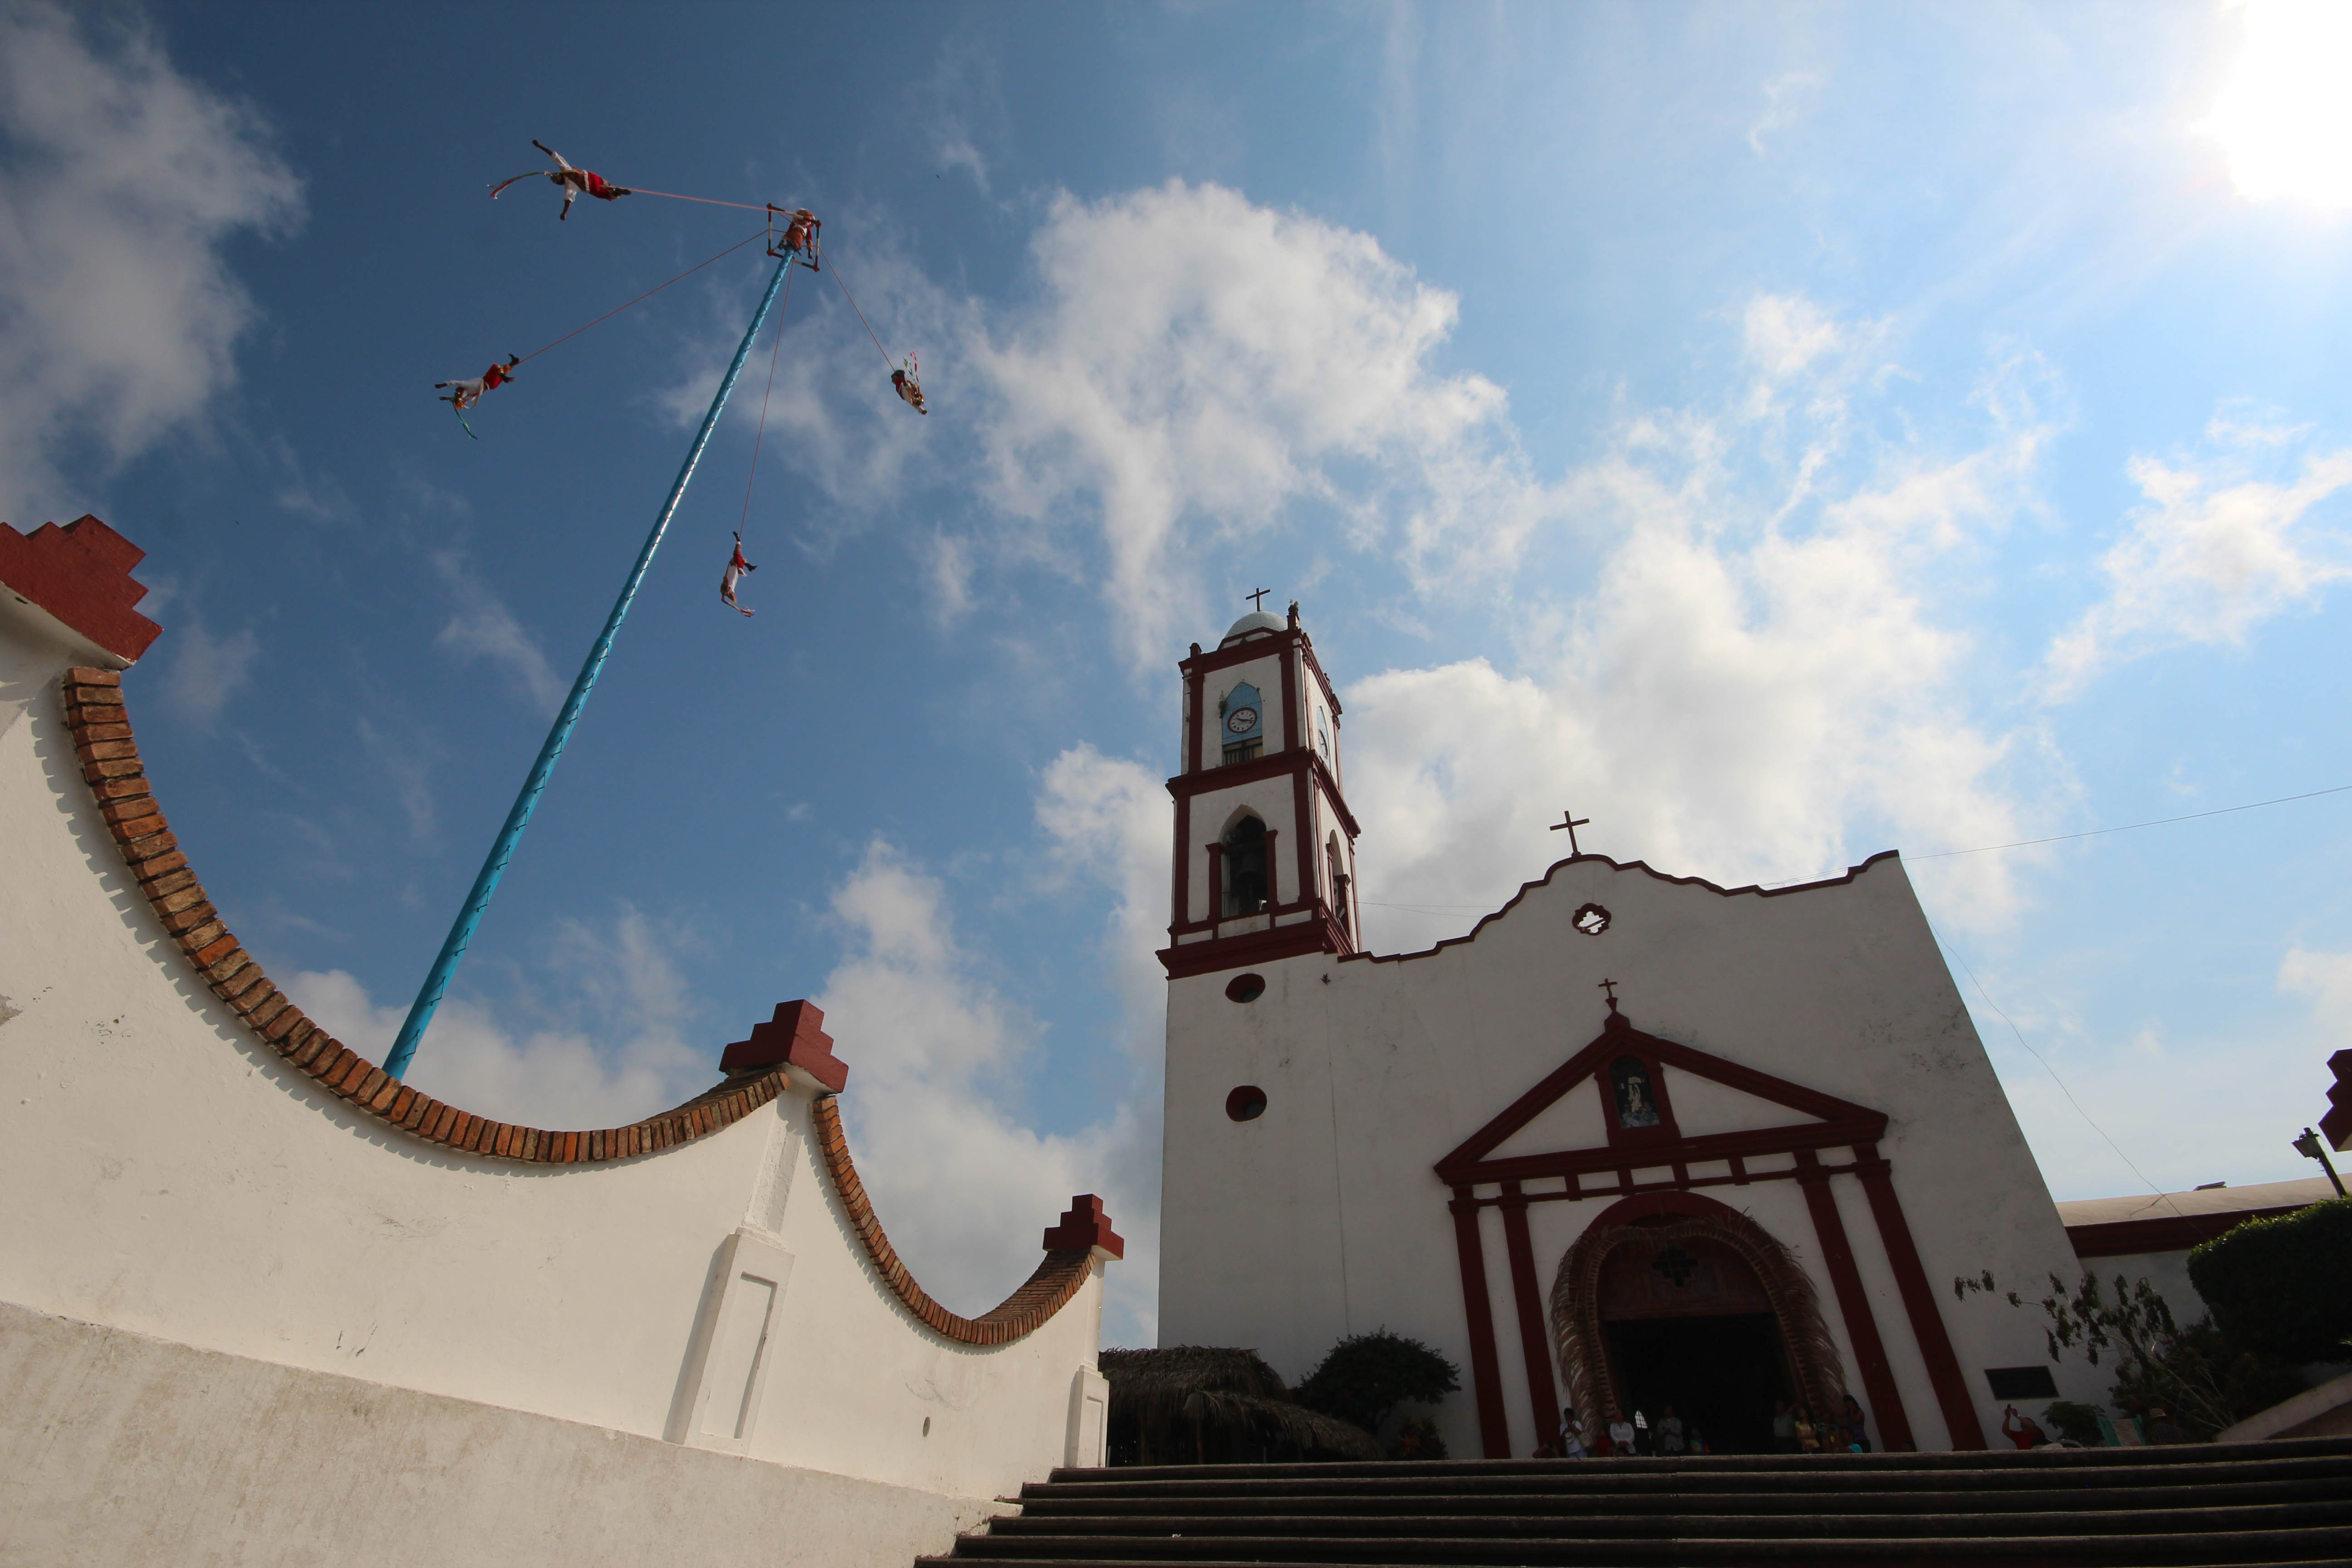 Papantla's main flying pole stands outside a church in the center of town. (Photo by Amado Treviño)